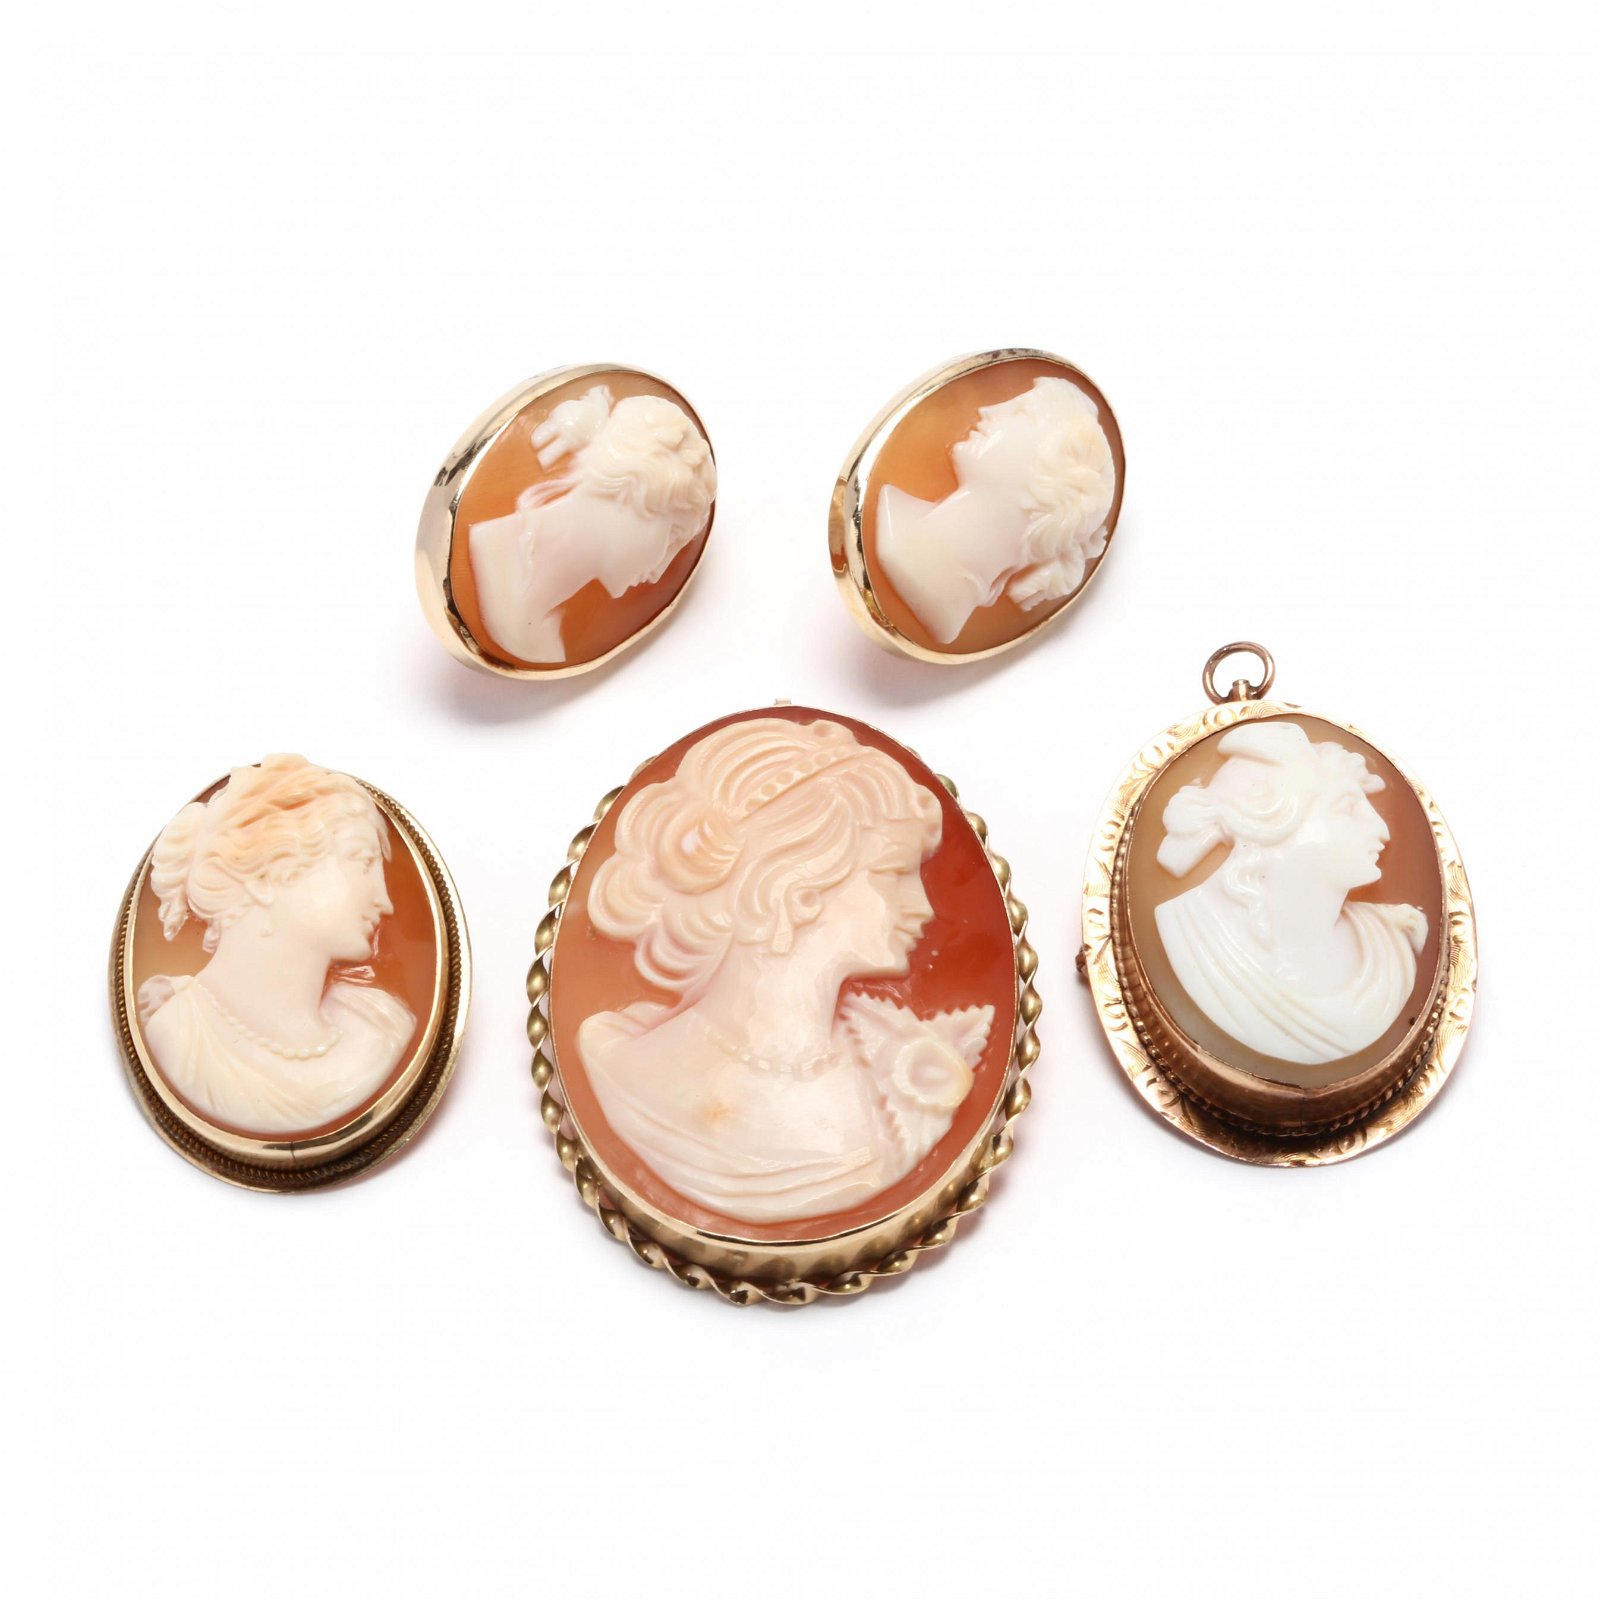 Collection of 14KT Gold and Carved Shell Cameos